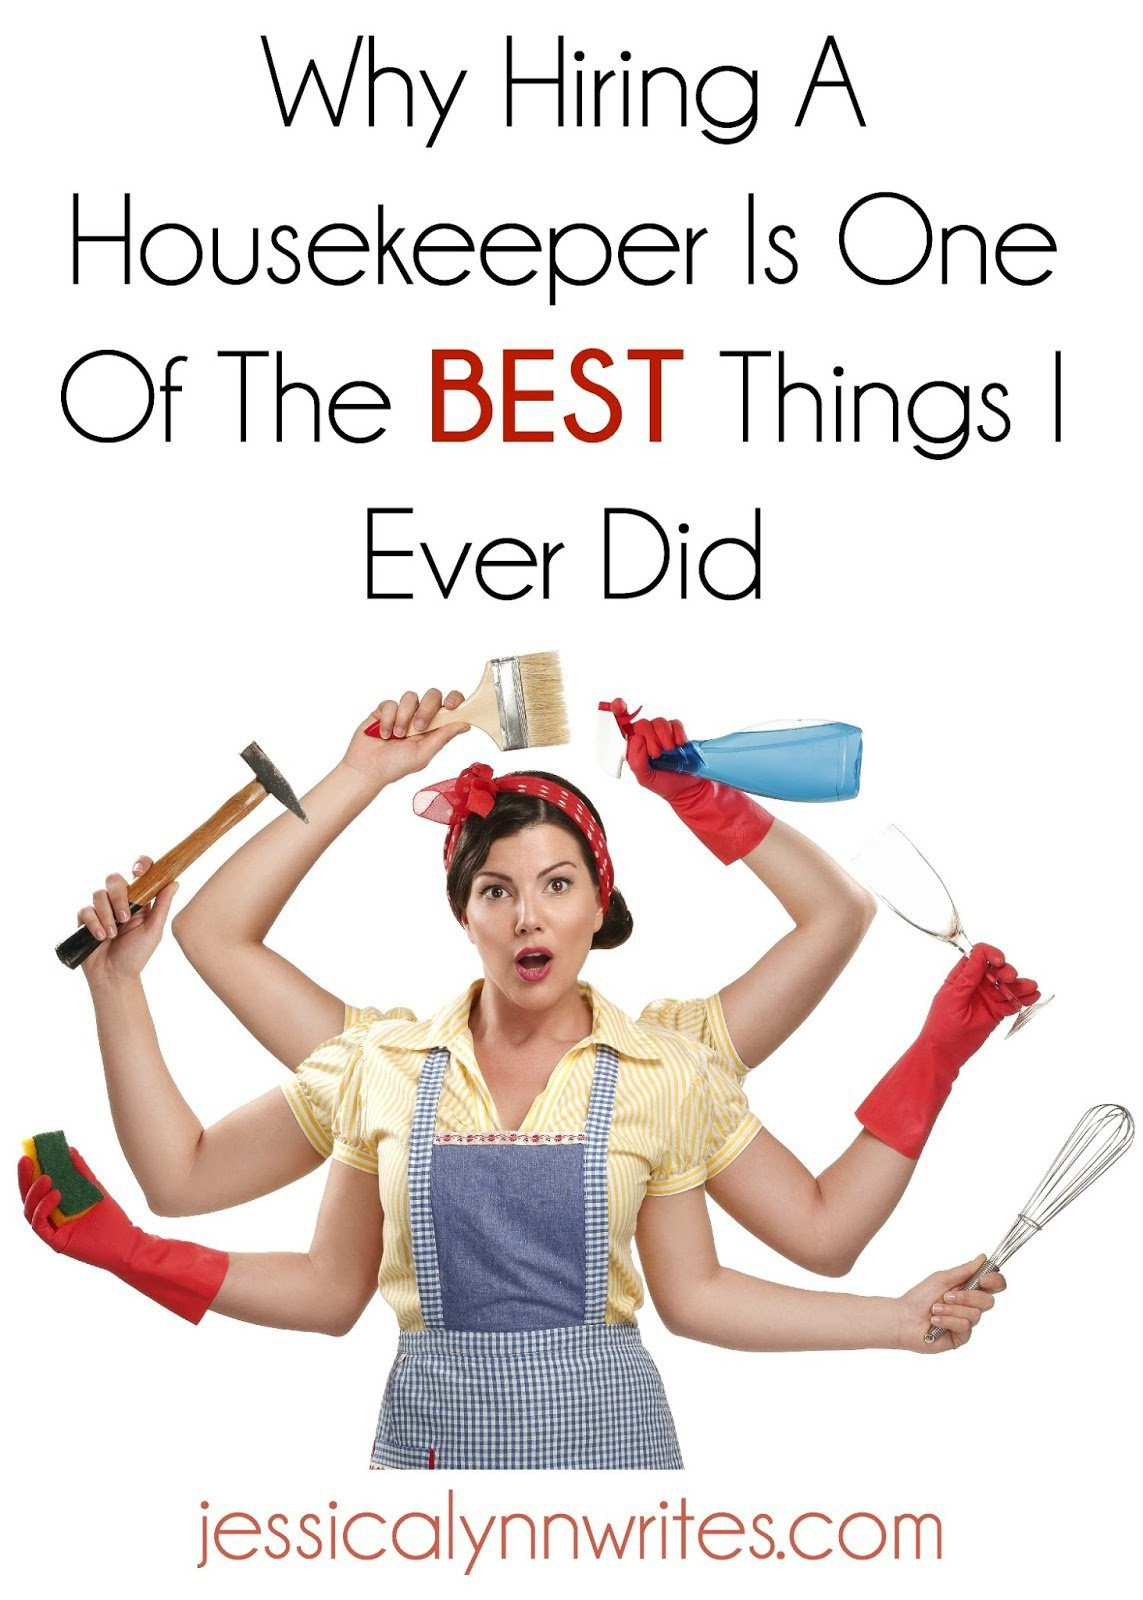 Attrayant Why Hiring A Housekeeper Is One Of The Best Things I Ever Did   Jessica  Lynn Writes